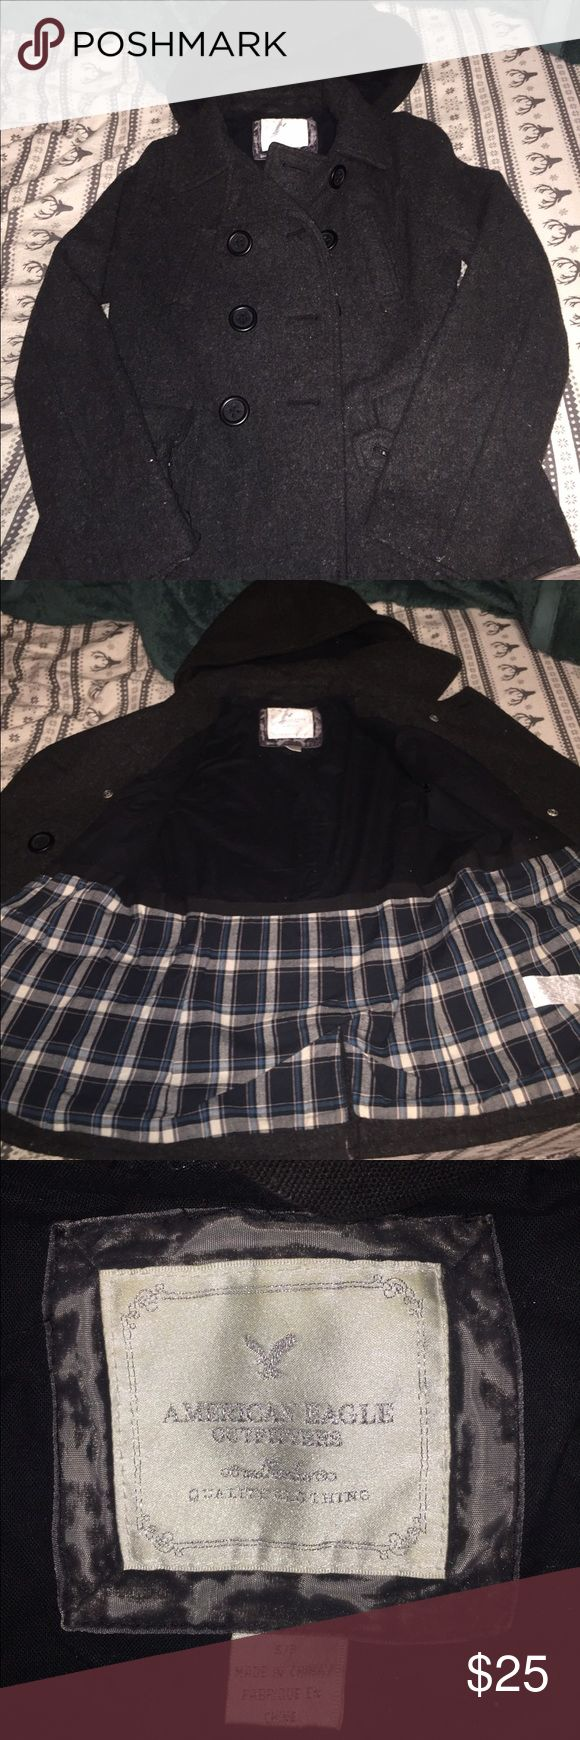 American Eagle Jacket black american eagle jacket with a hood, missing a button on the sleeve, size small American Eagle Outfitters Jackets & Coats Pea Coats